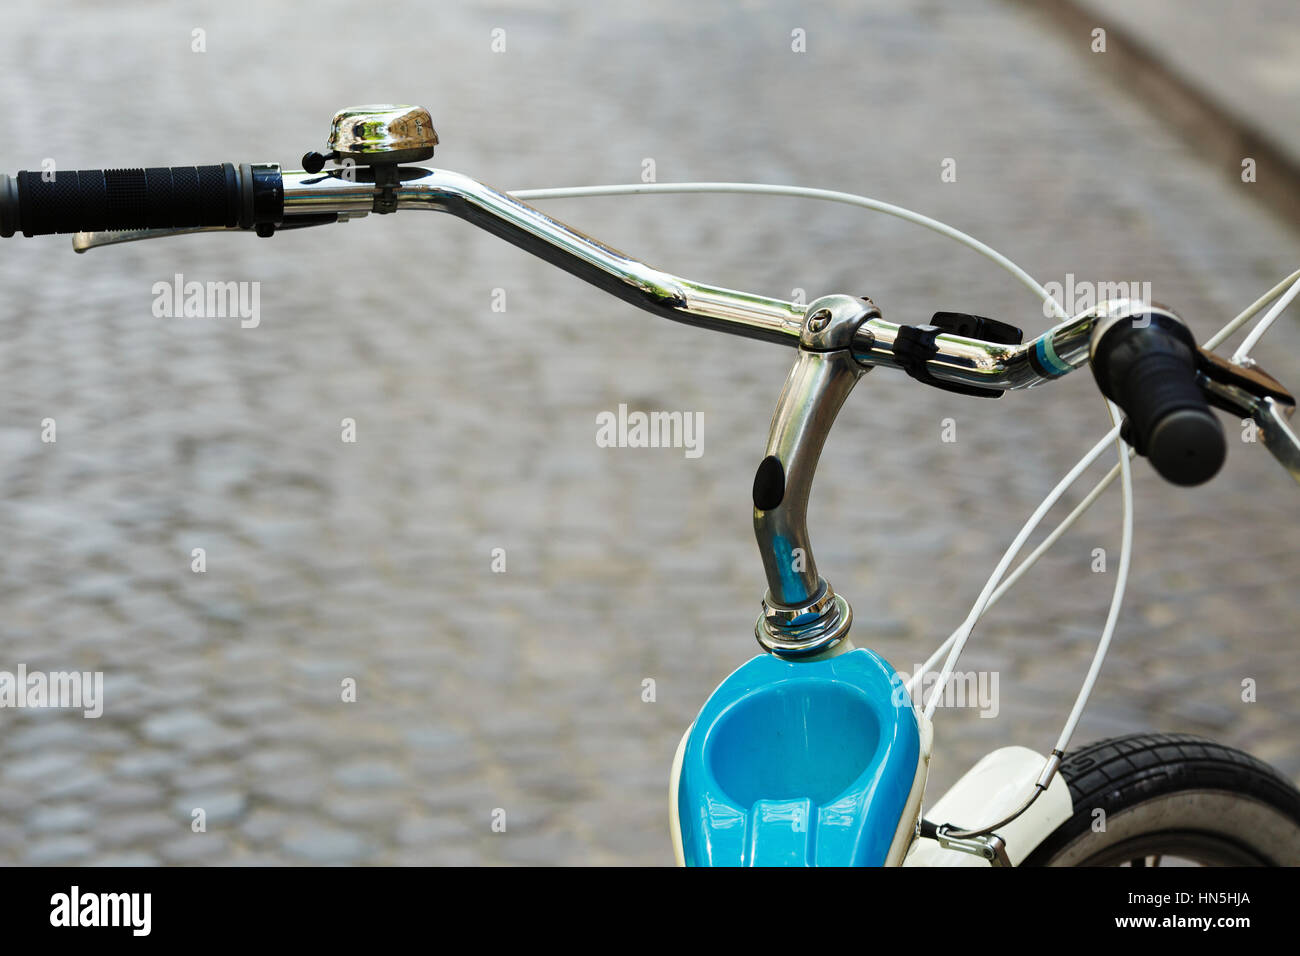 Helm of bicycle which is standing on the street of old city - Stock Image